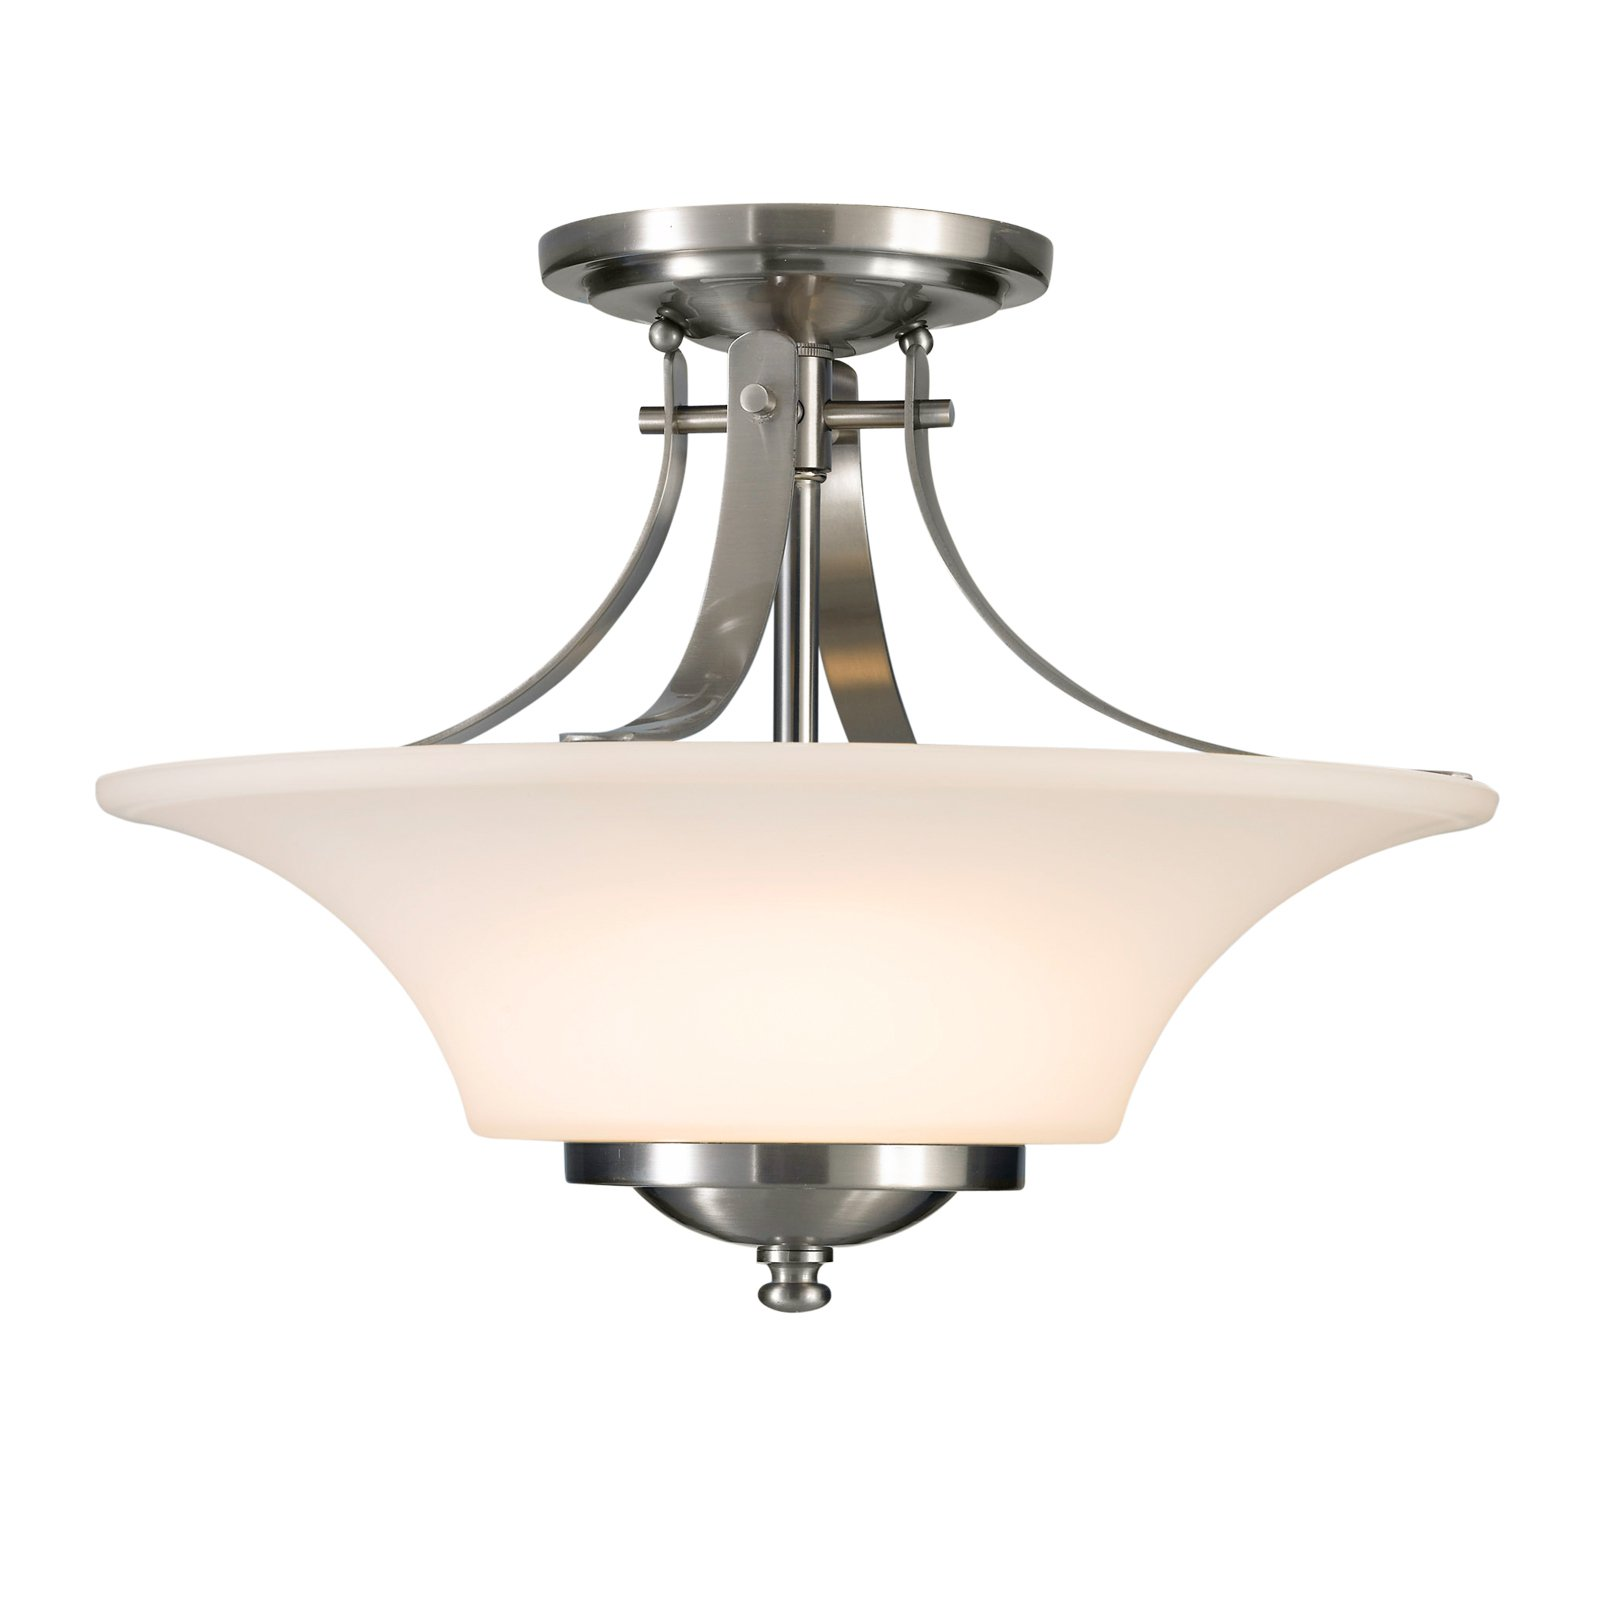 Feiss Barrington Ceiling Light 15W in. Brushed Steel by Murray Feiss